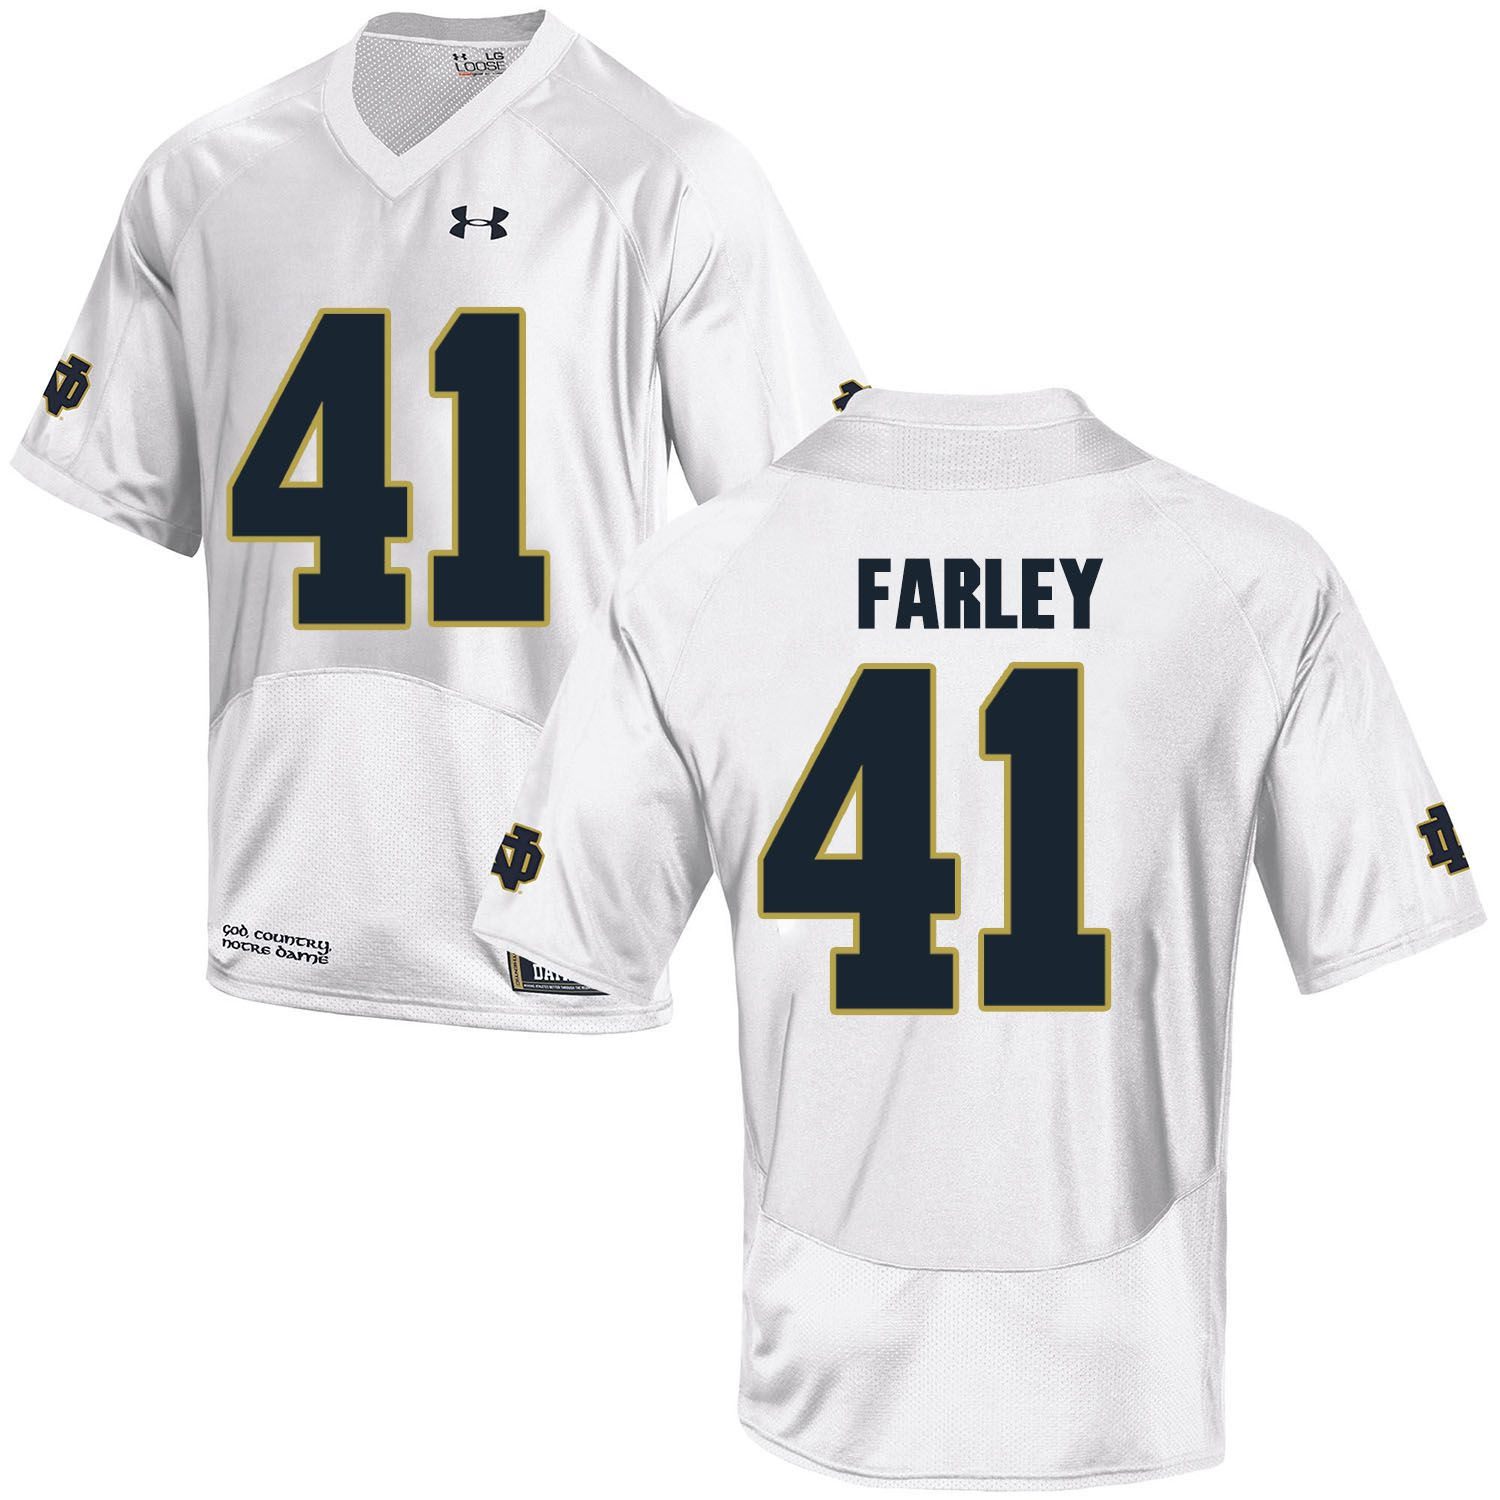 Men Norte Dame Fighting Irish 41 Farley White Customized NCAA Jerseys